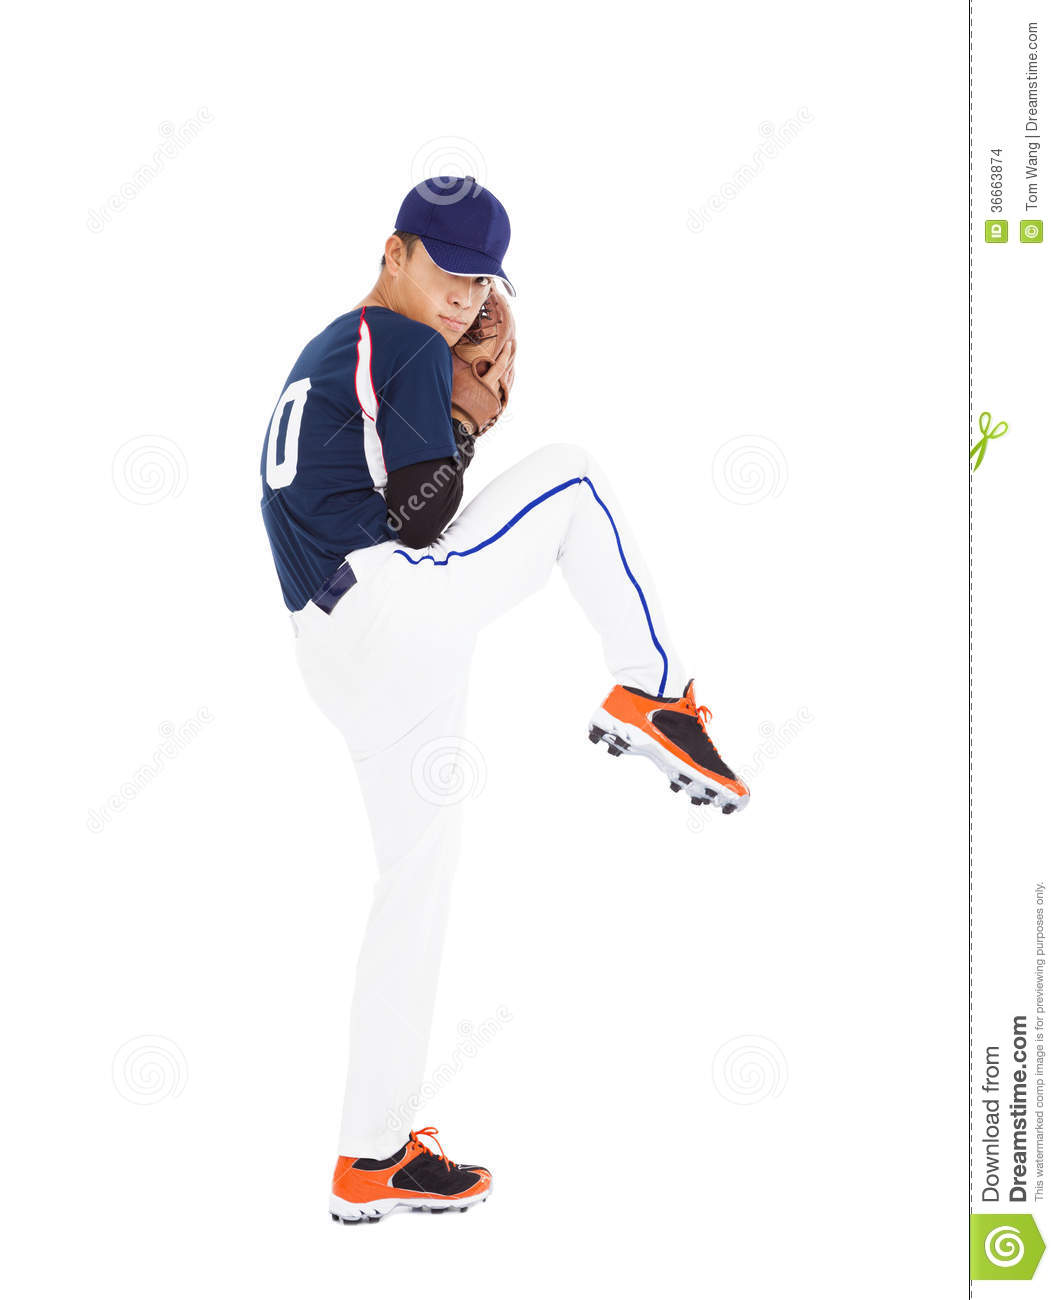 Baseball Player Pitcher Ready Pose Throwing Ball Stock Images - Image ...